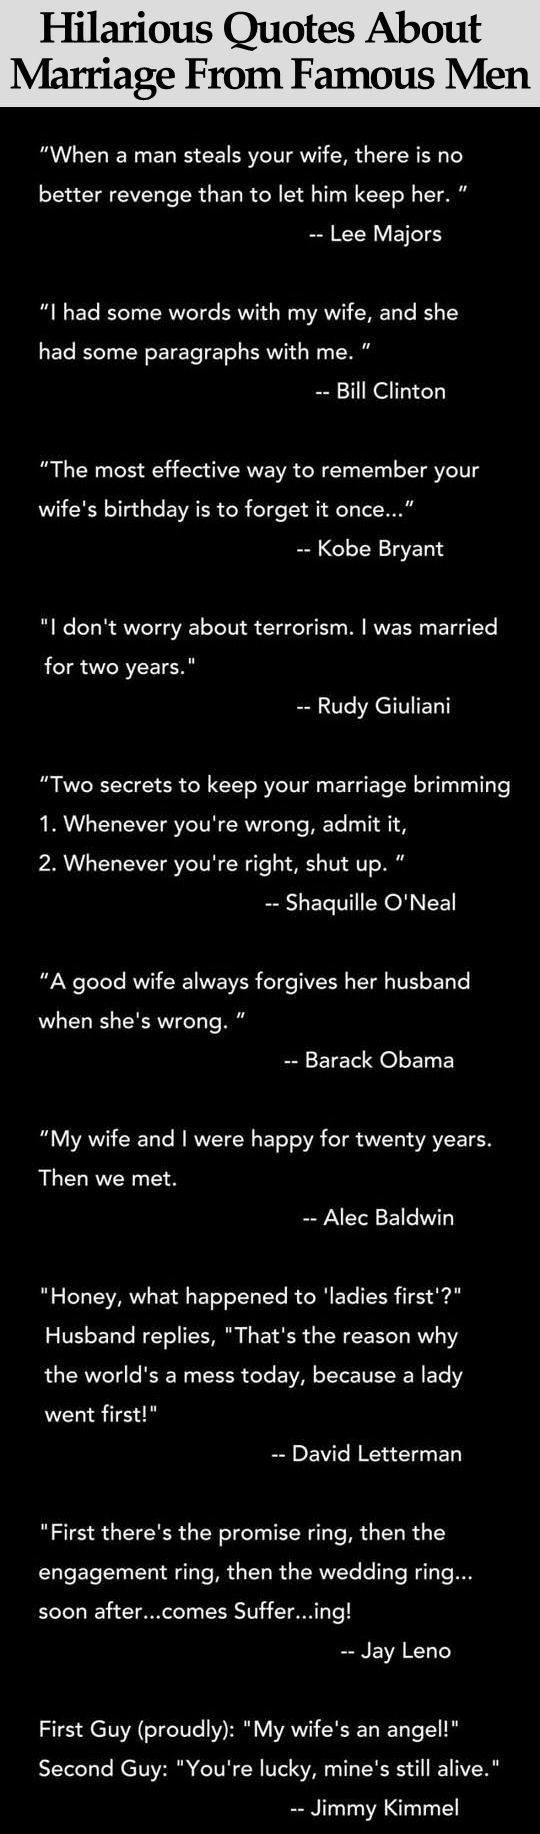 Hilarious Quotes About Marriage From Famous Men funny jokes story lol funny quote funny quotes funny sayings joke hilarious humor stories marriage humor funny jokes